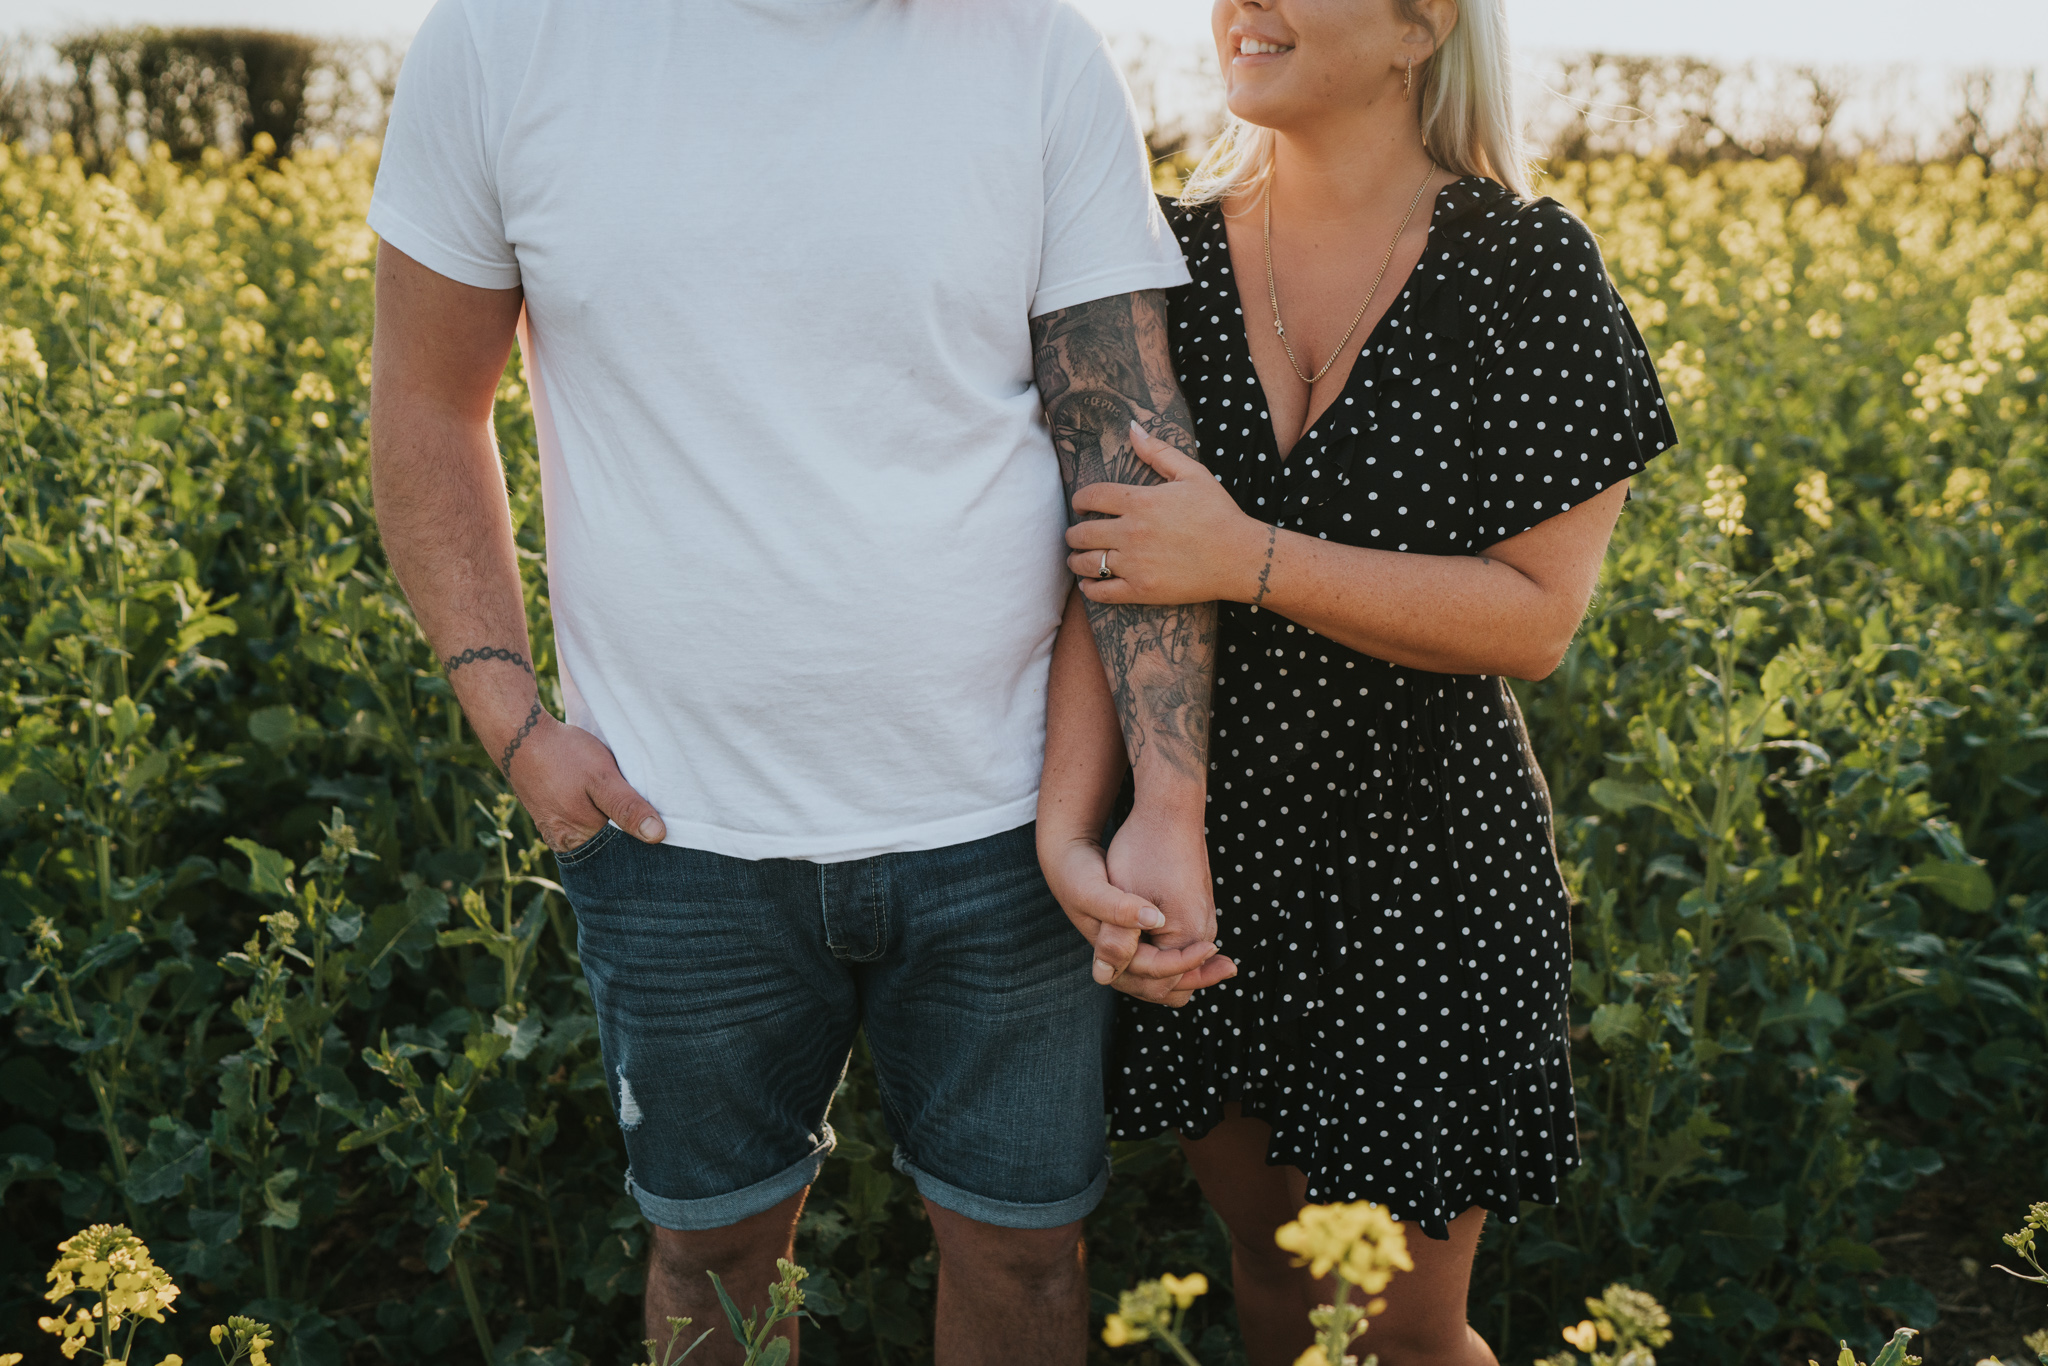 chloe-dan-pre-wedding-engagement-session-countryside-grace-elizabeth-colchester-essex-alternative-wedding-lifestyle-photographer-suffolk-norfolk-devon (15 of 50).jpg